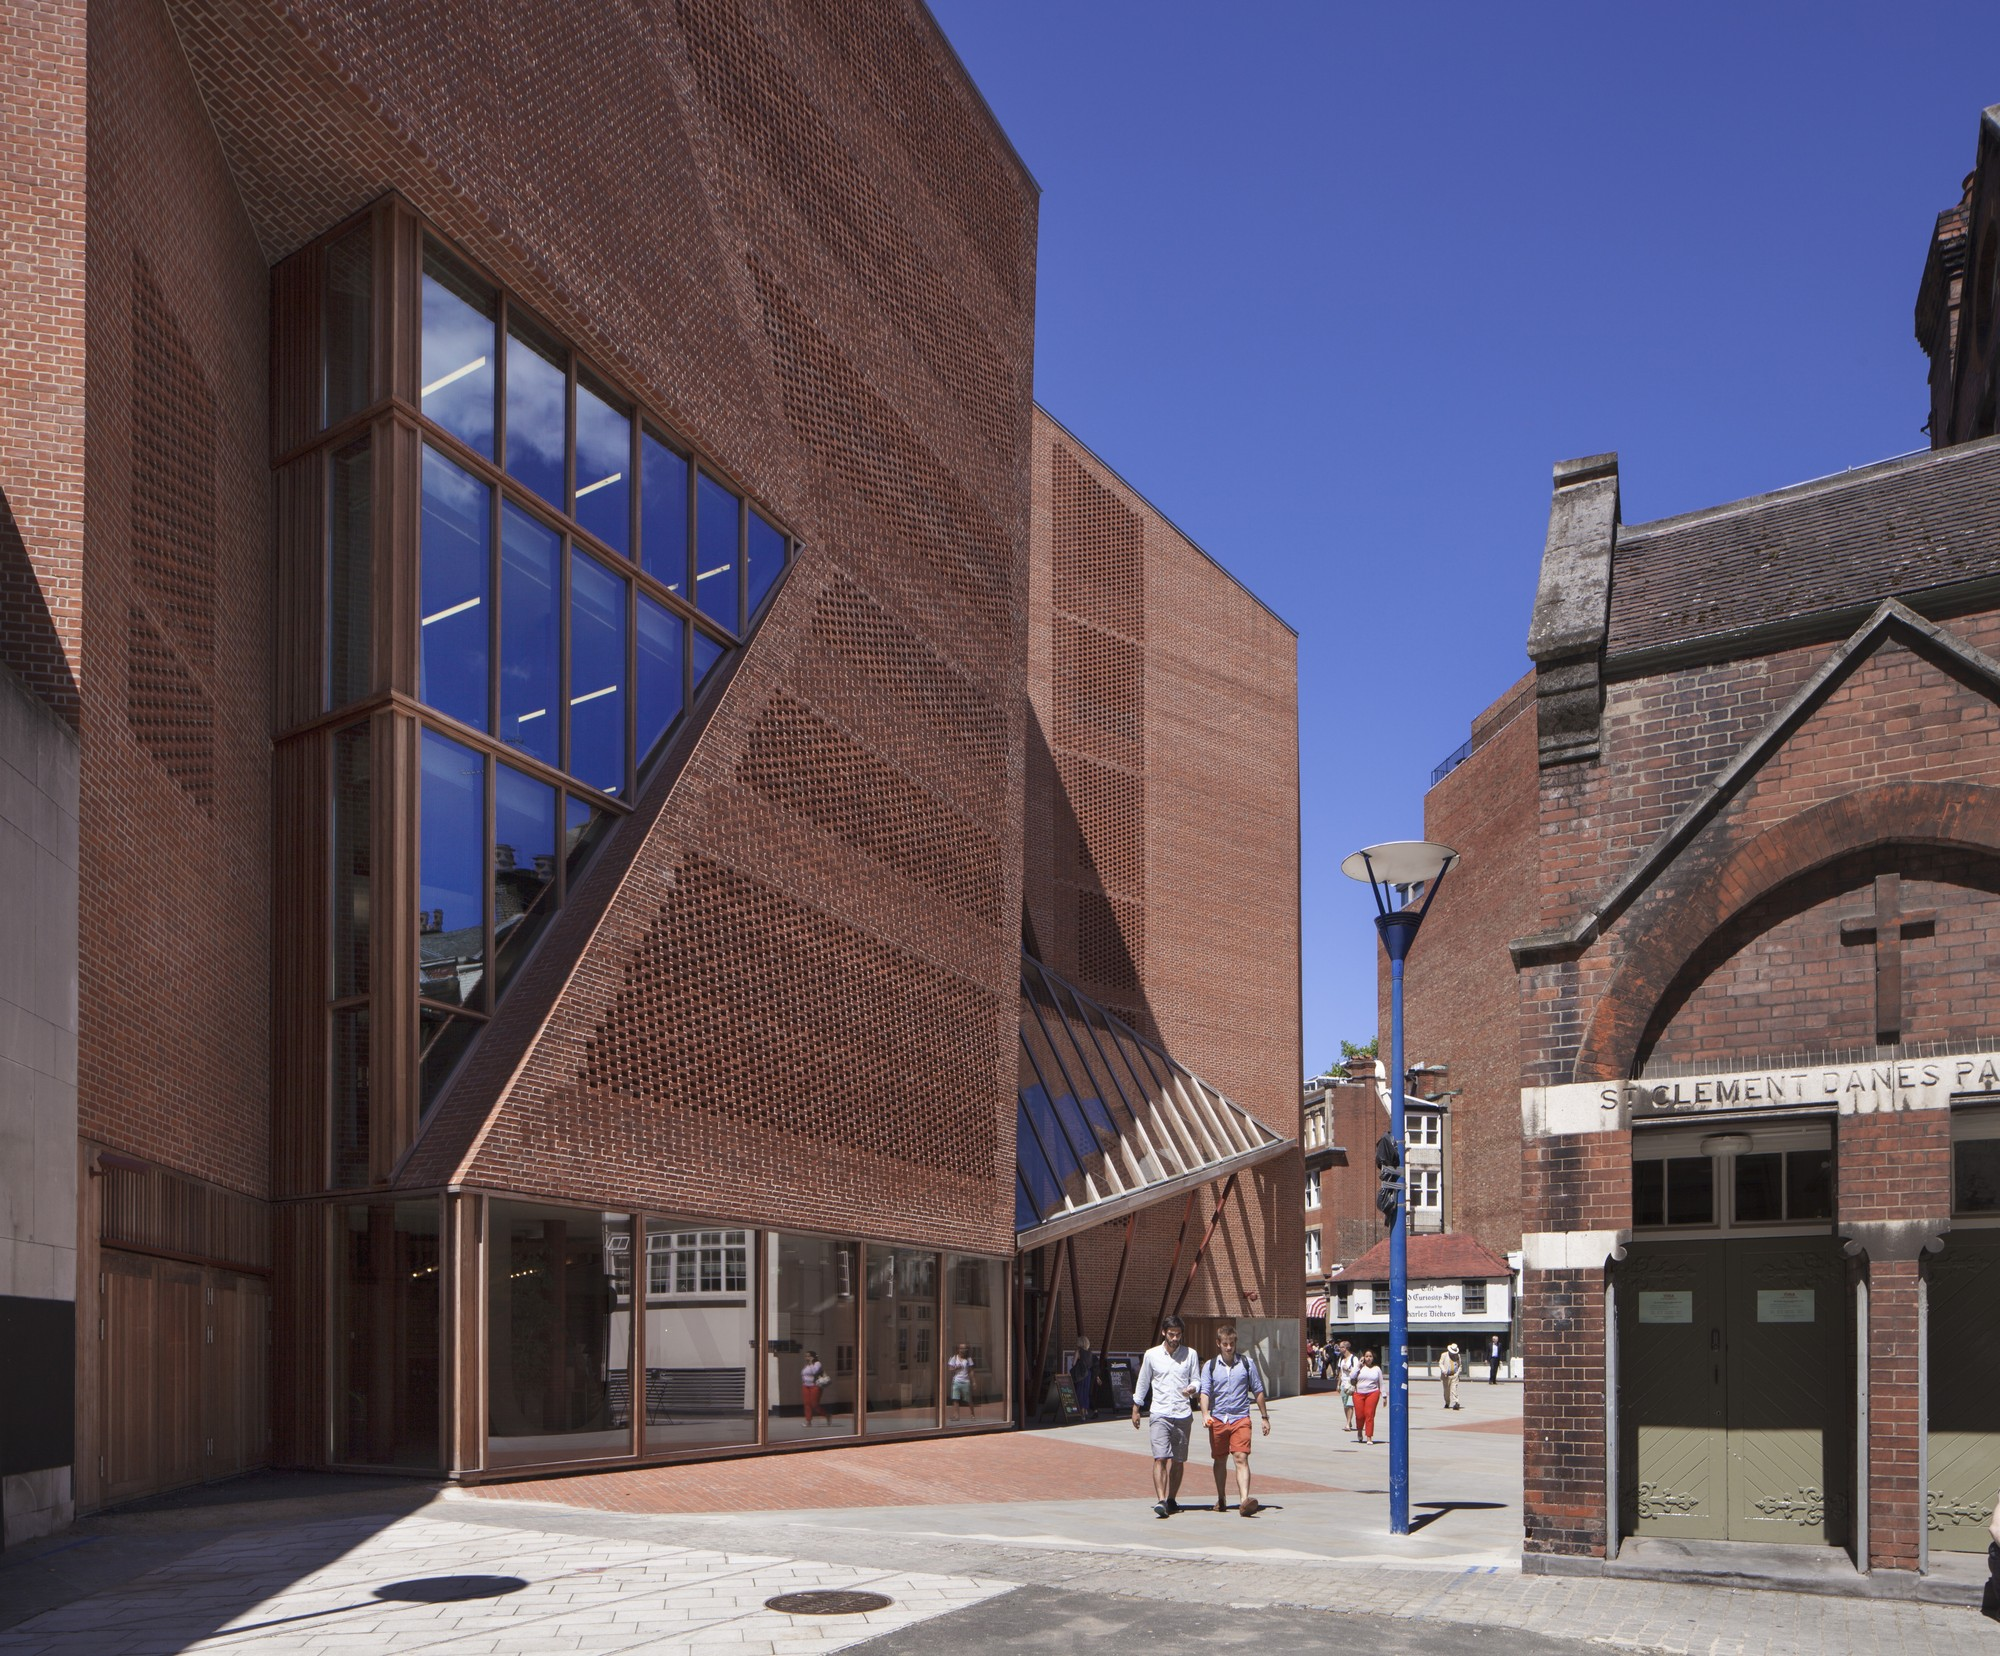 RIBA Awards 2015 Royal Gold Medal to O'Donnell + Tuomey, The LSE Saw Swee Hock Student Centre, which has been shortlisted for this year's Stirling Prize. Image © Alex Bland